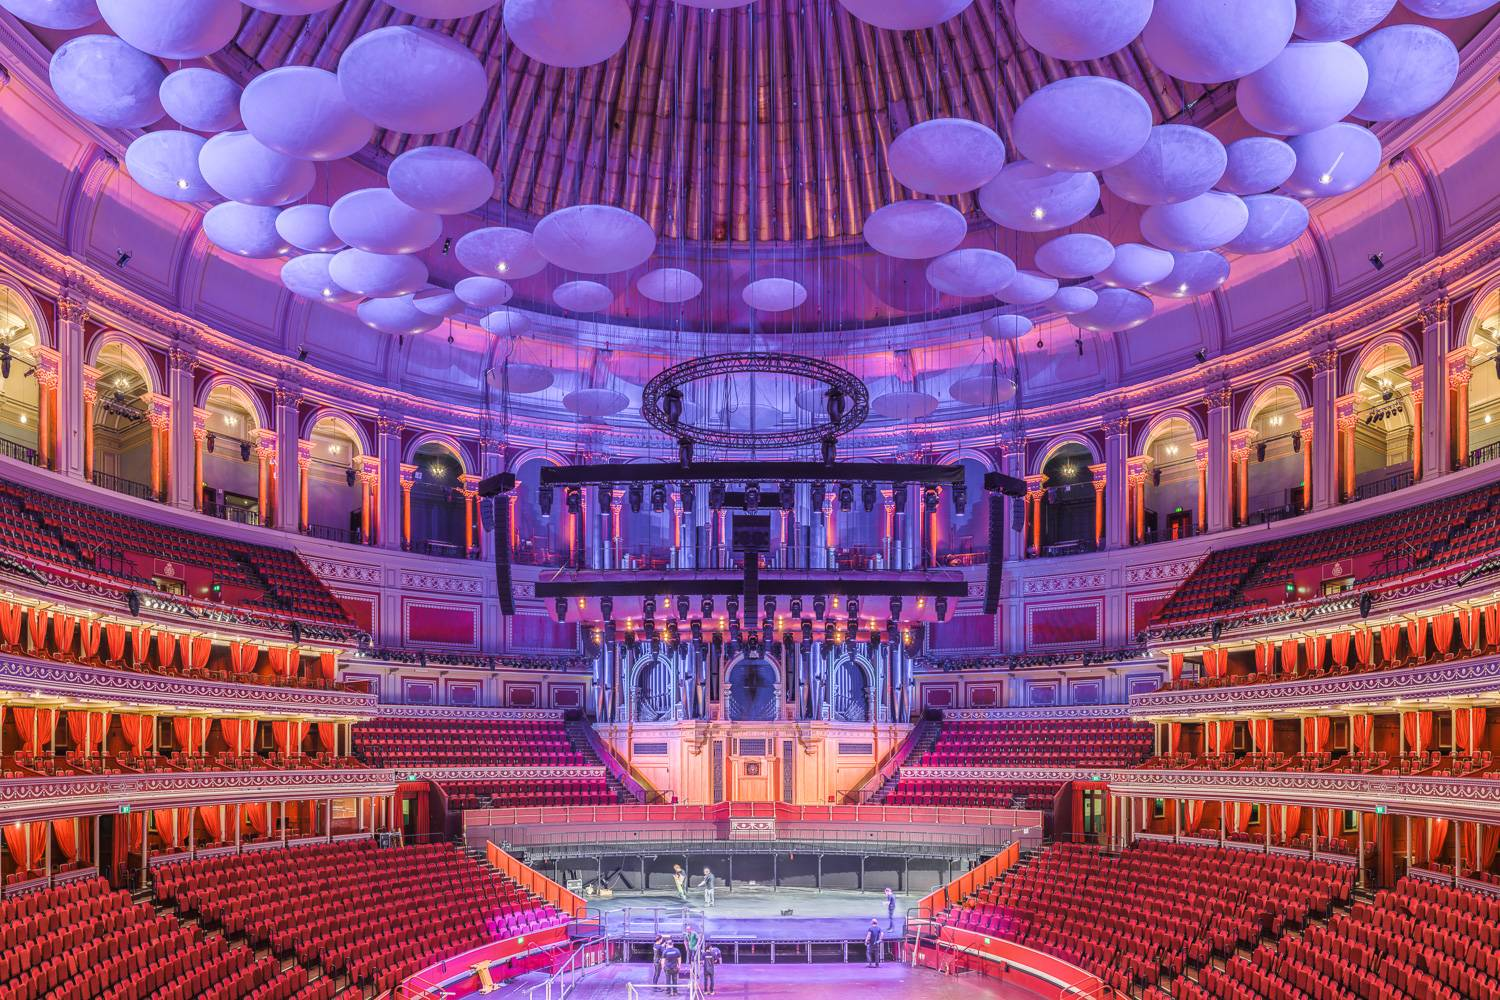 Image of a center view of Royal Albert Hall in a purple tone.